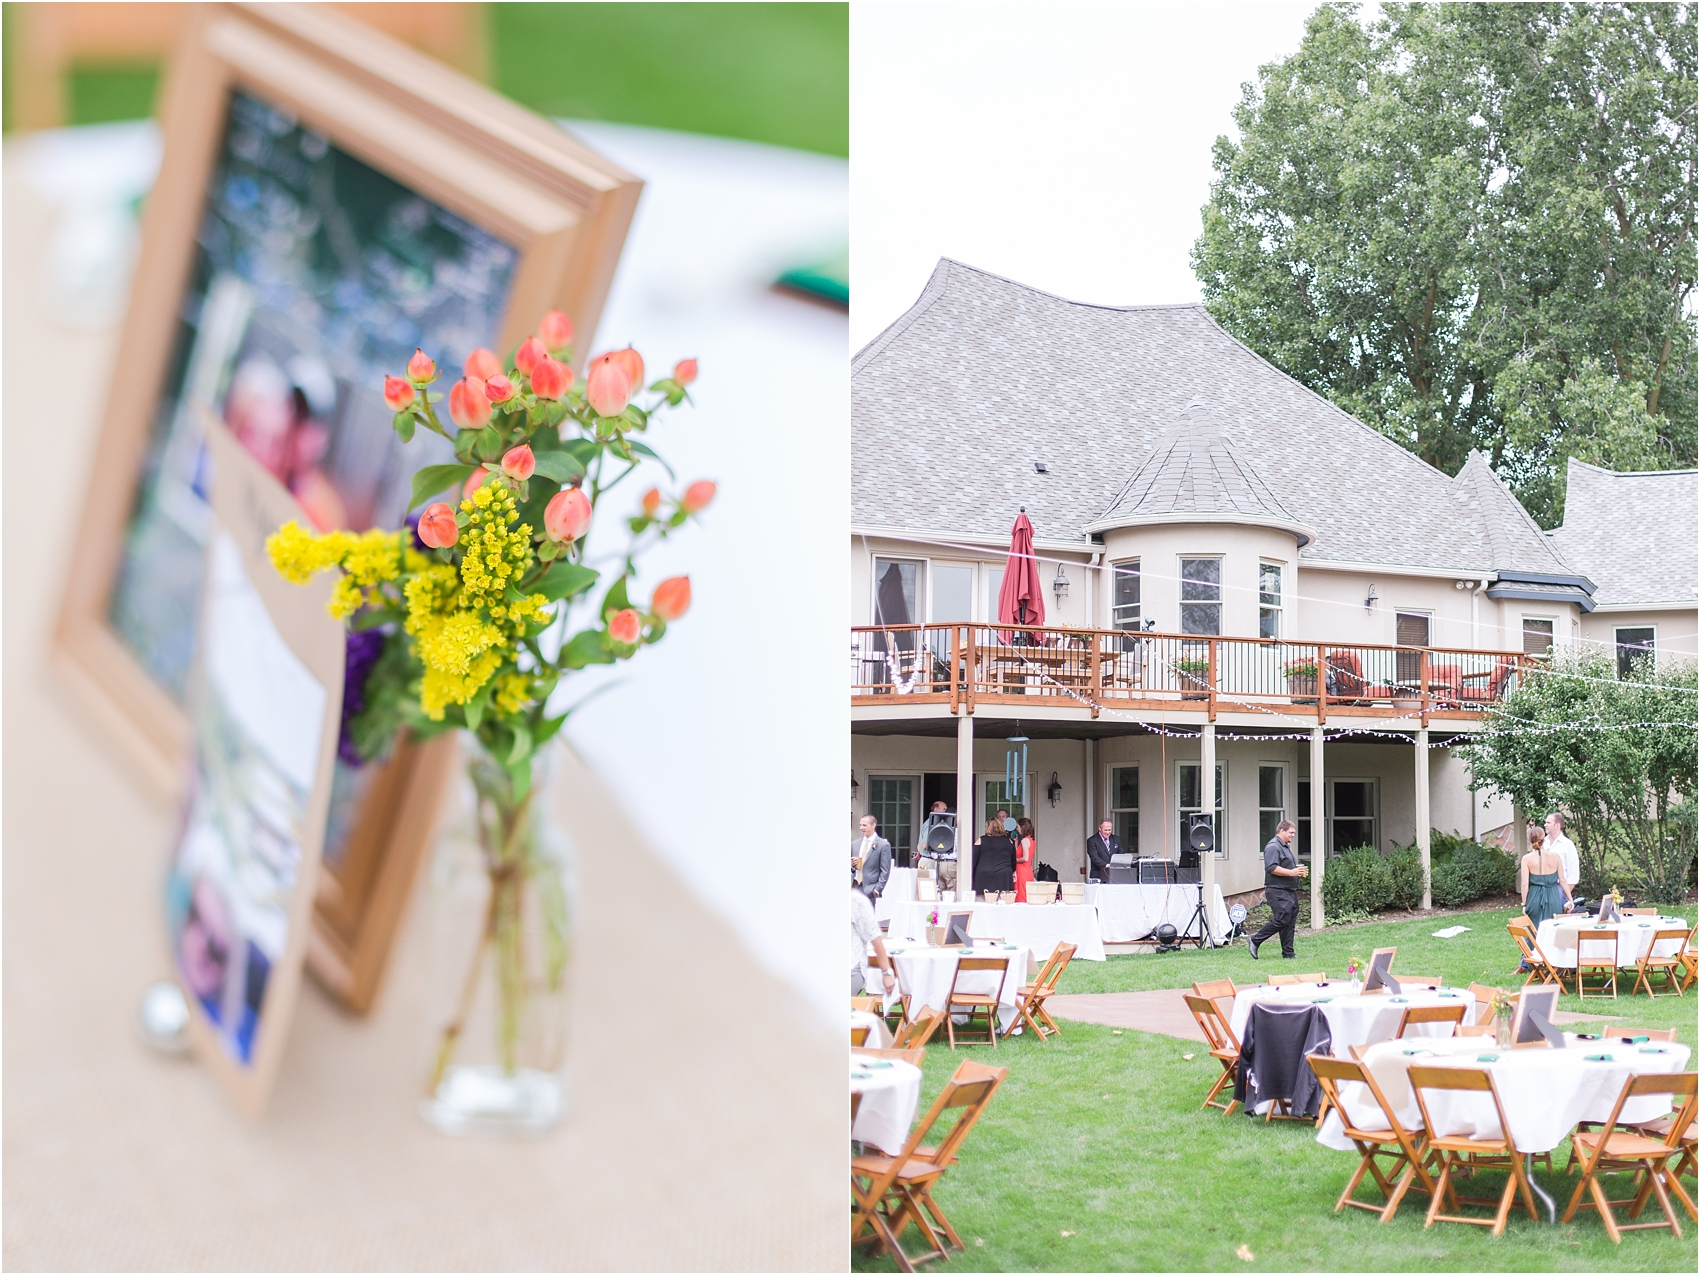 romantic-intimate-backyard-wedding-photos-at-private-estate-in-ann-arbor-mi-by-courtney-carolyn-photography_0080.jpg